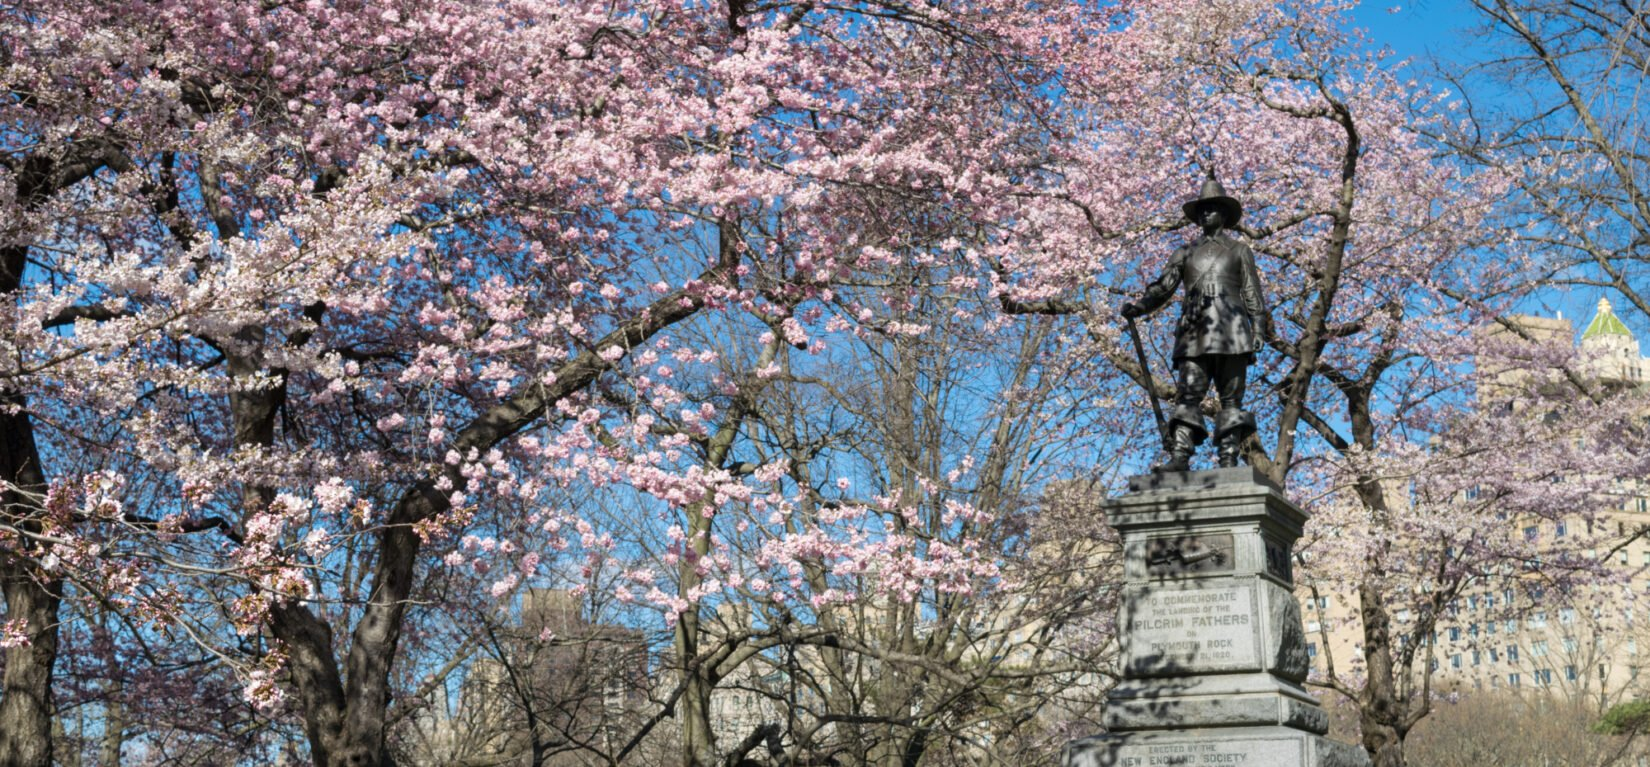 The statue is pictured atop Pilgrim Hill surrounded by cherry blossoms